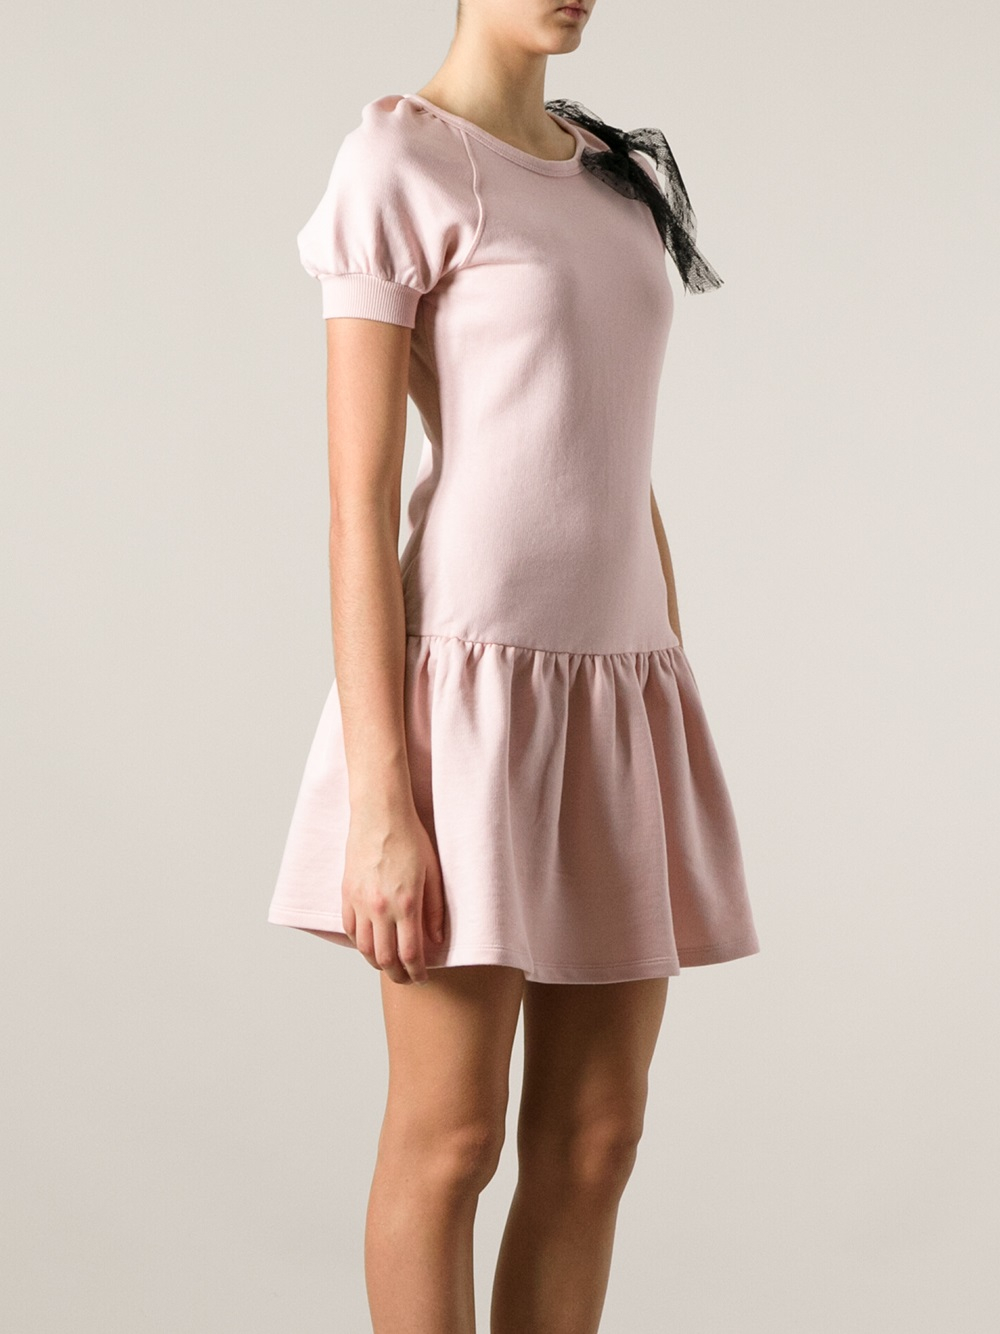 Red Valentino Bow Detail Sweater Dress In Pink Lyst